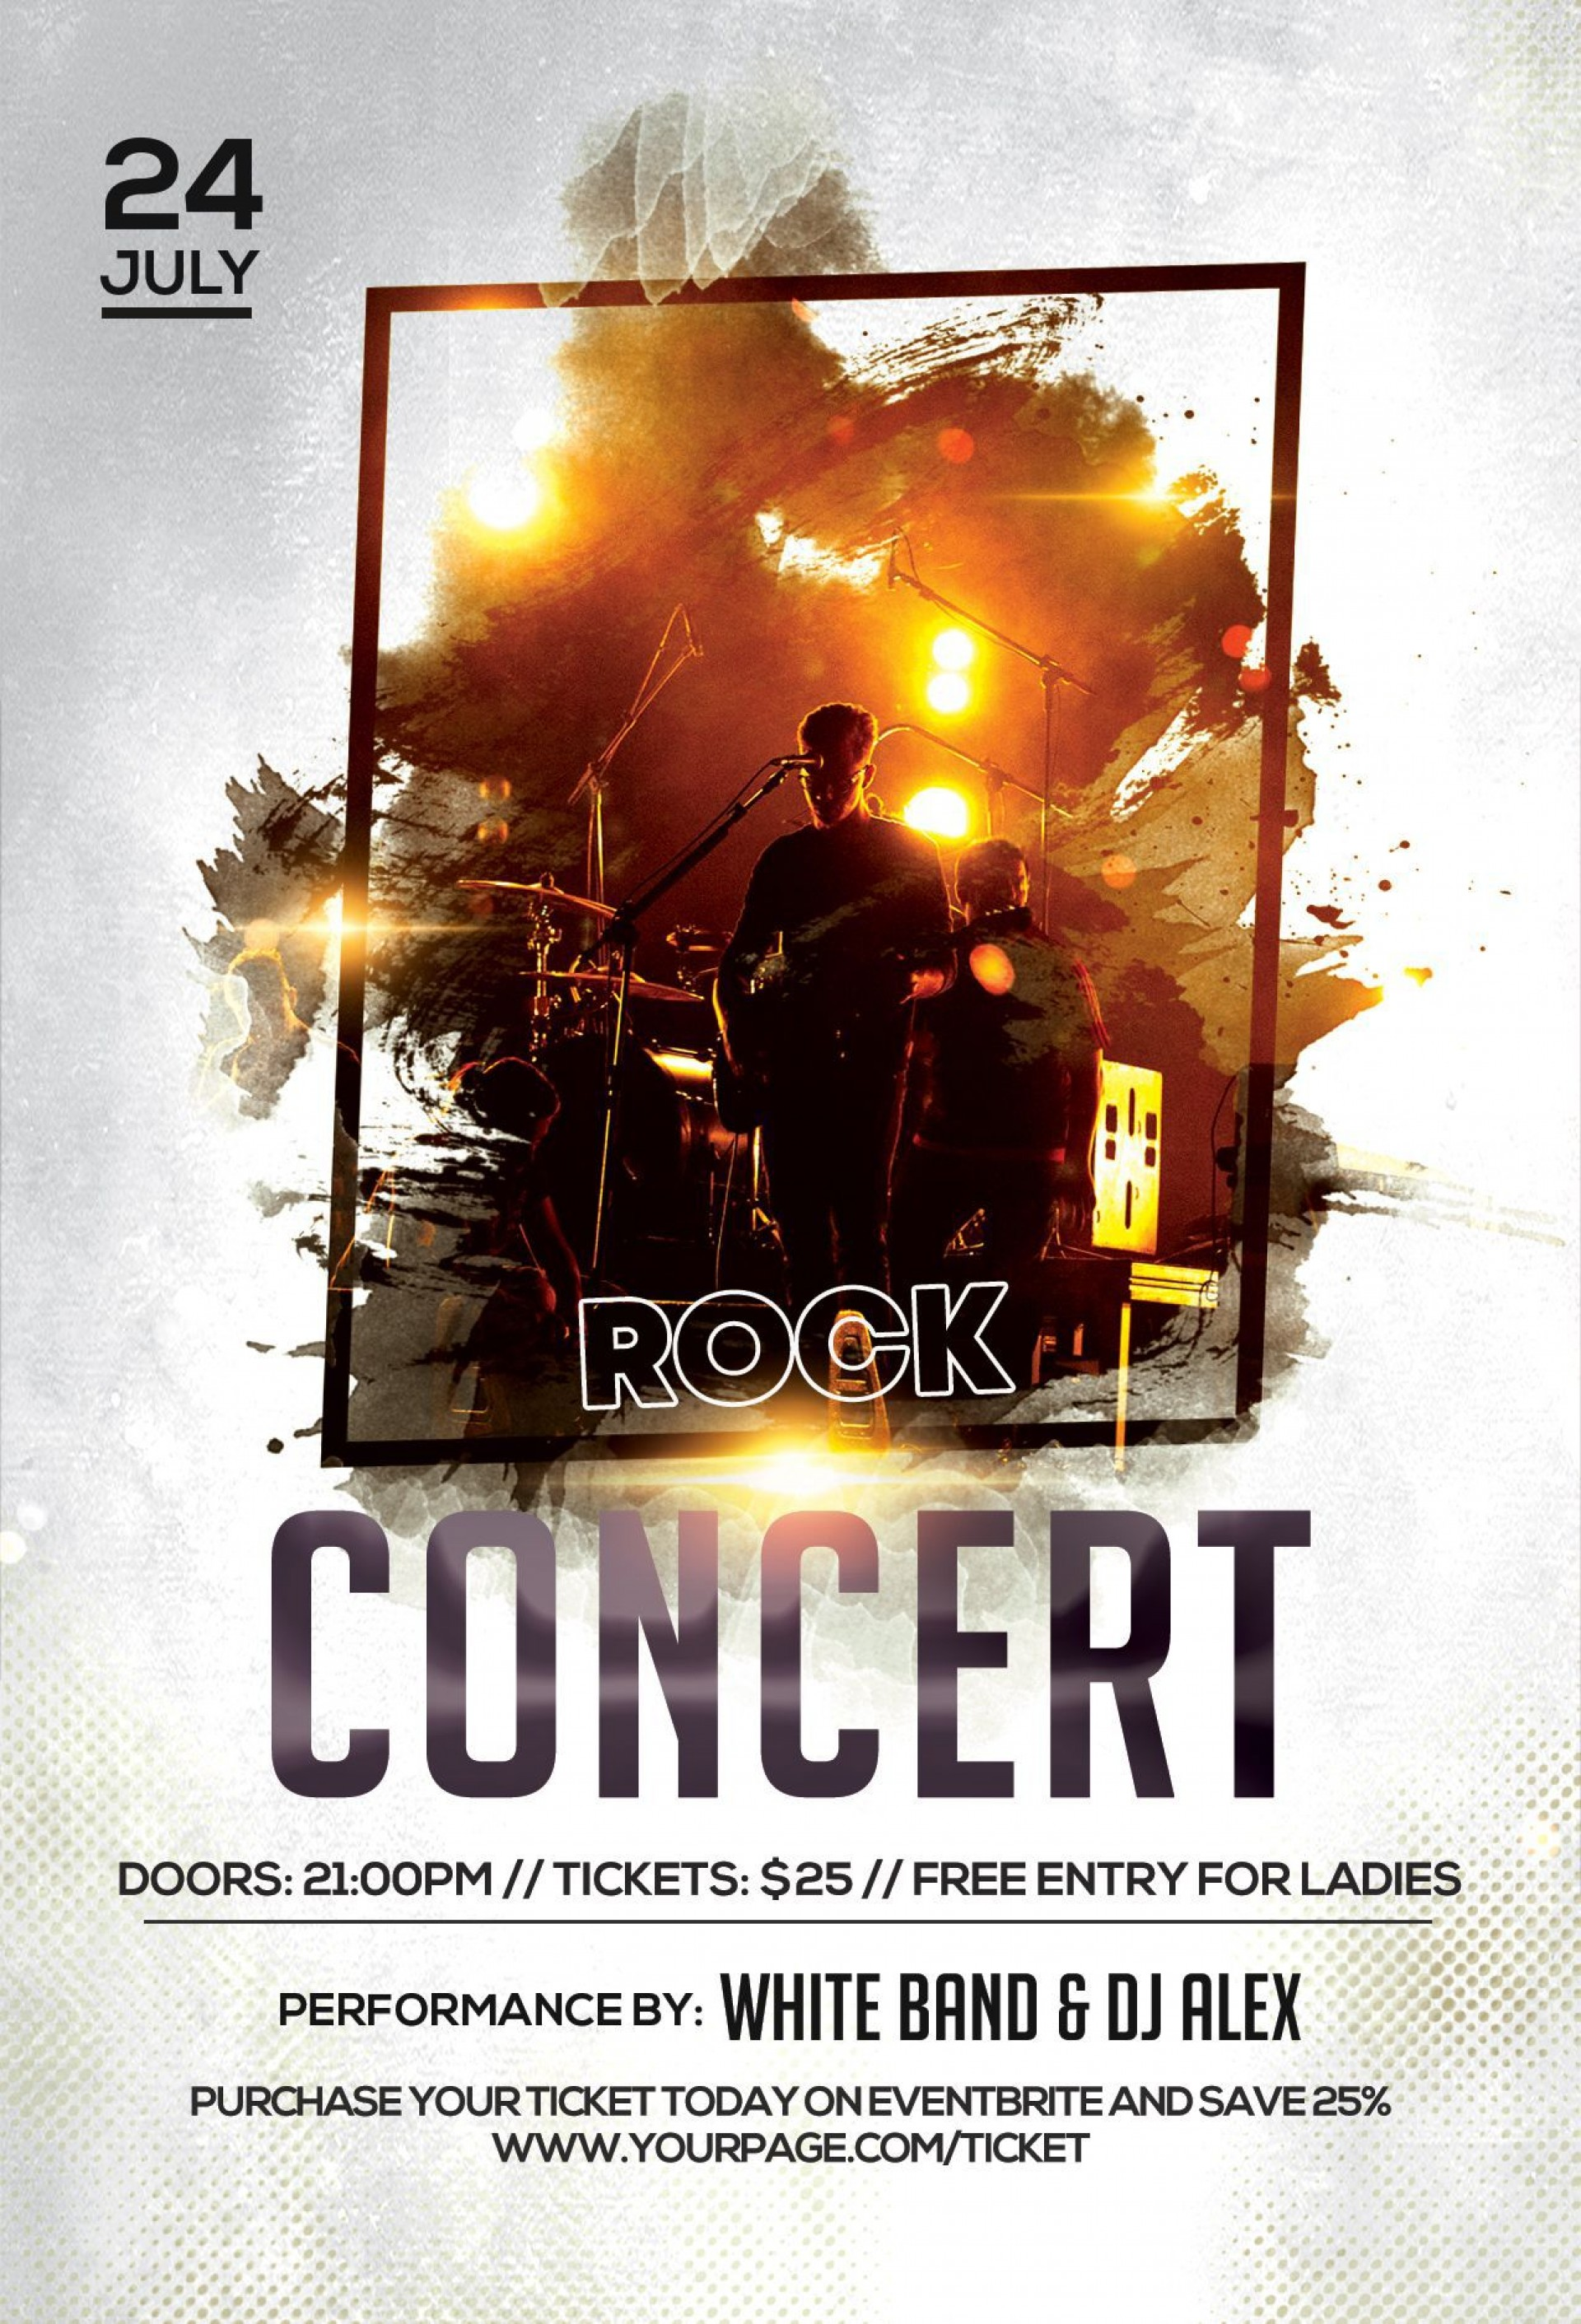 004 Amazing Free Concert Poster Template Highest Quality  Rock Psd Christma Photoshop1920